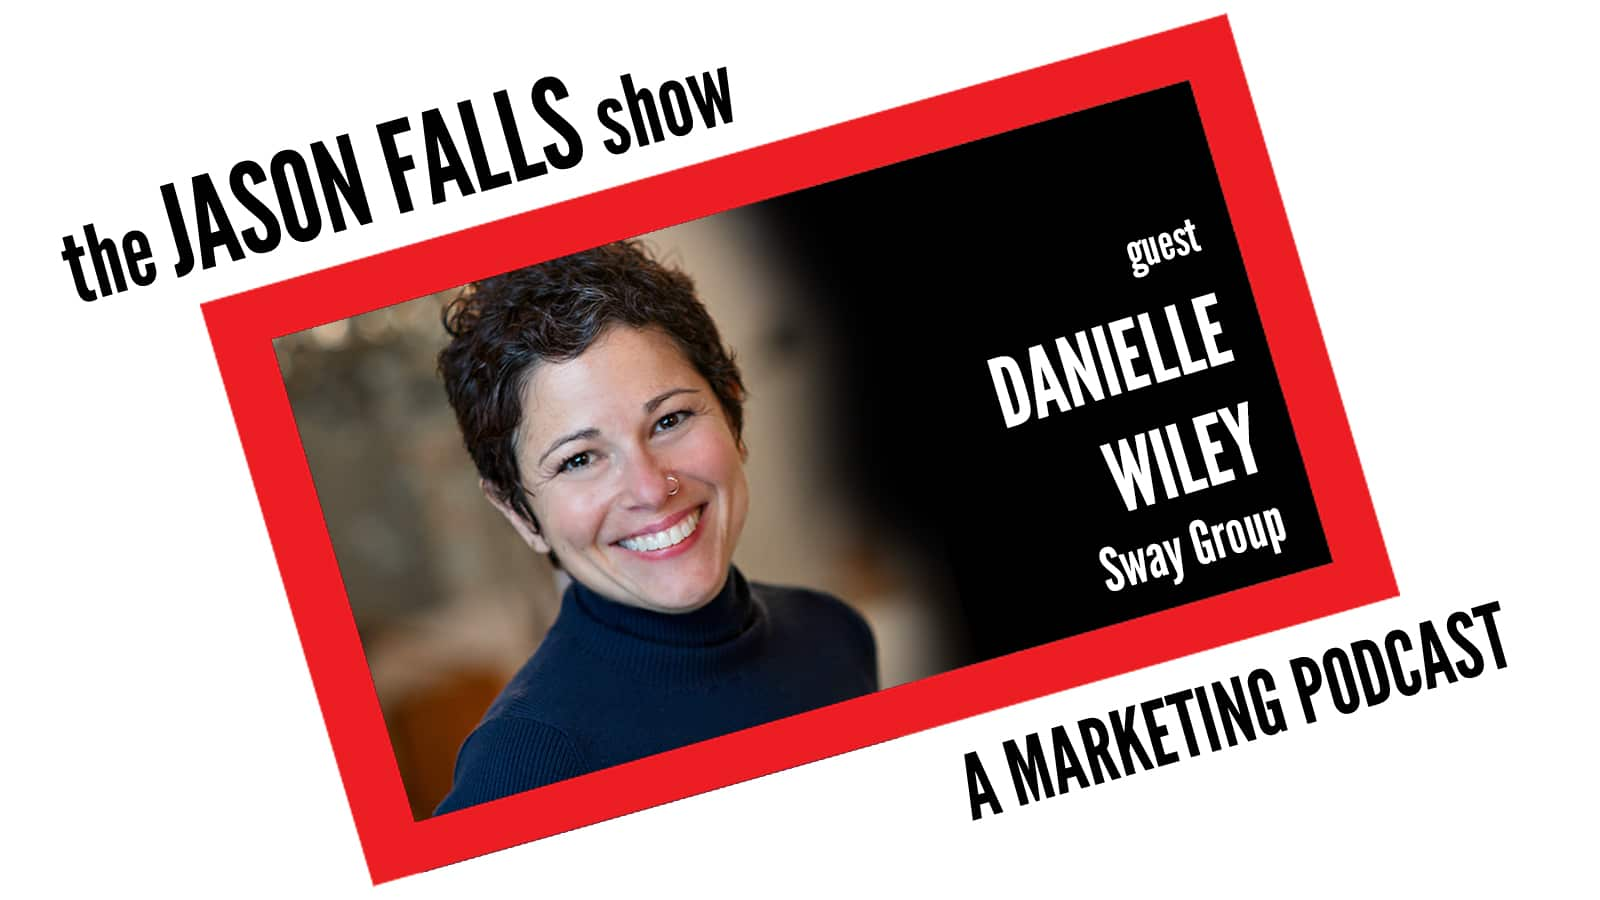 Influencer Marketing Expert Danielle Wiley